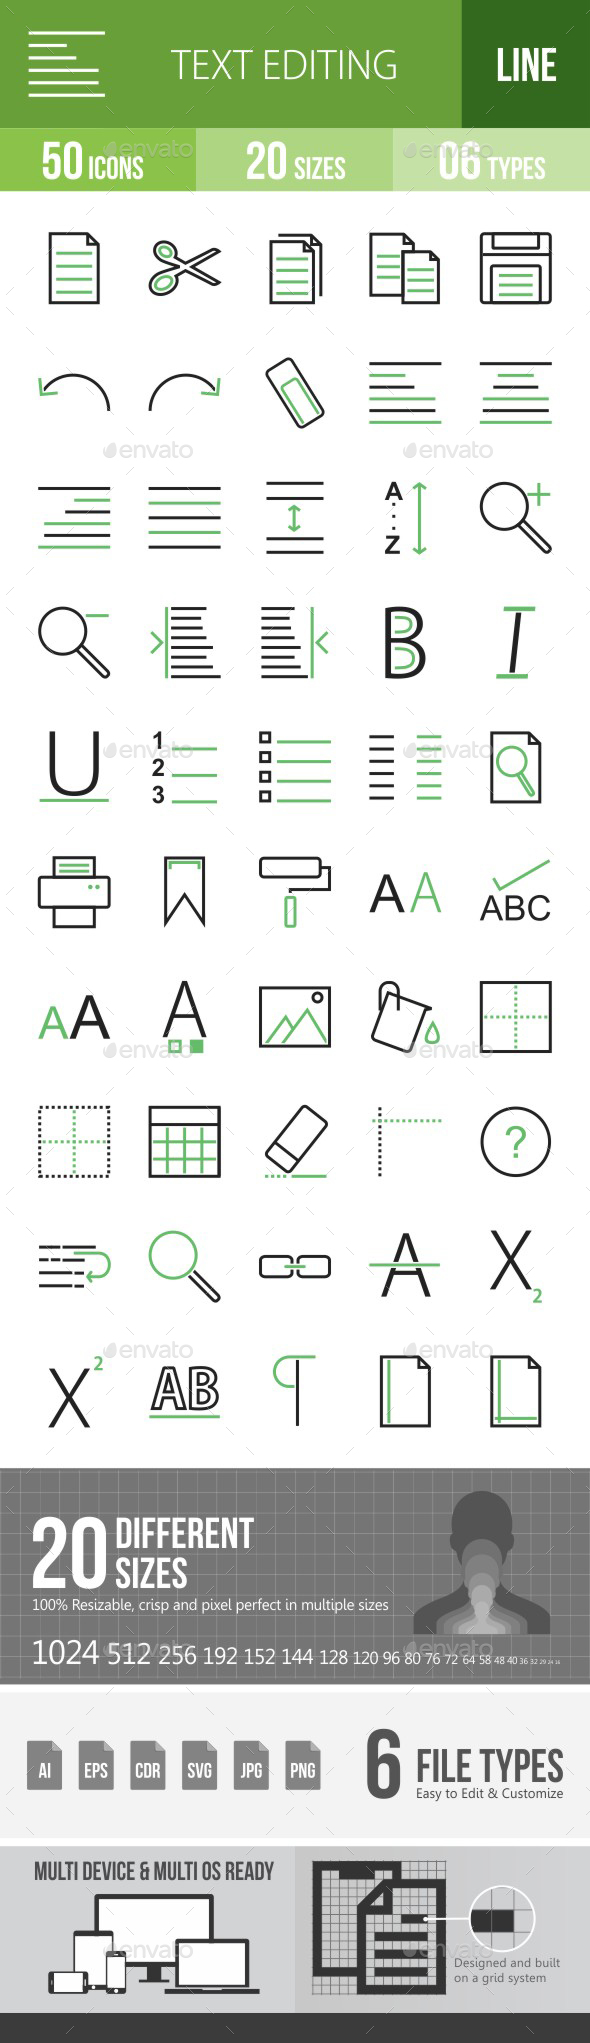 Text Editing Green & Black Icons - Icons